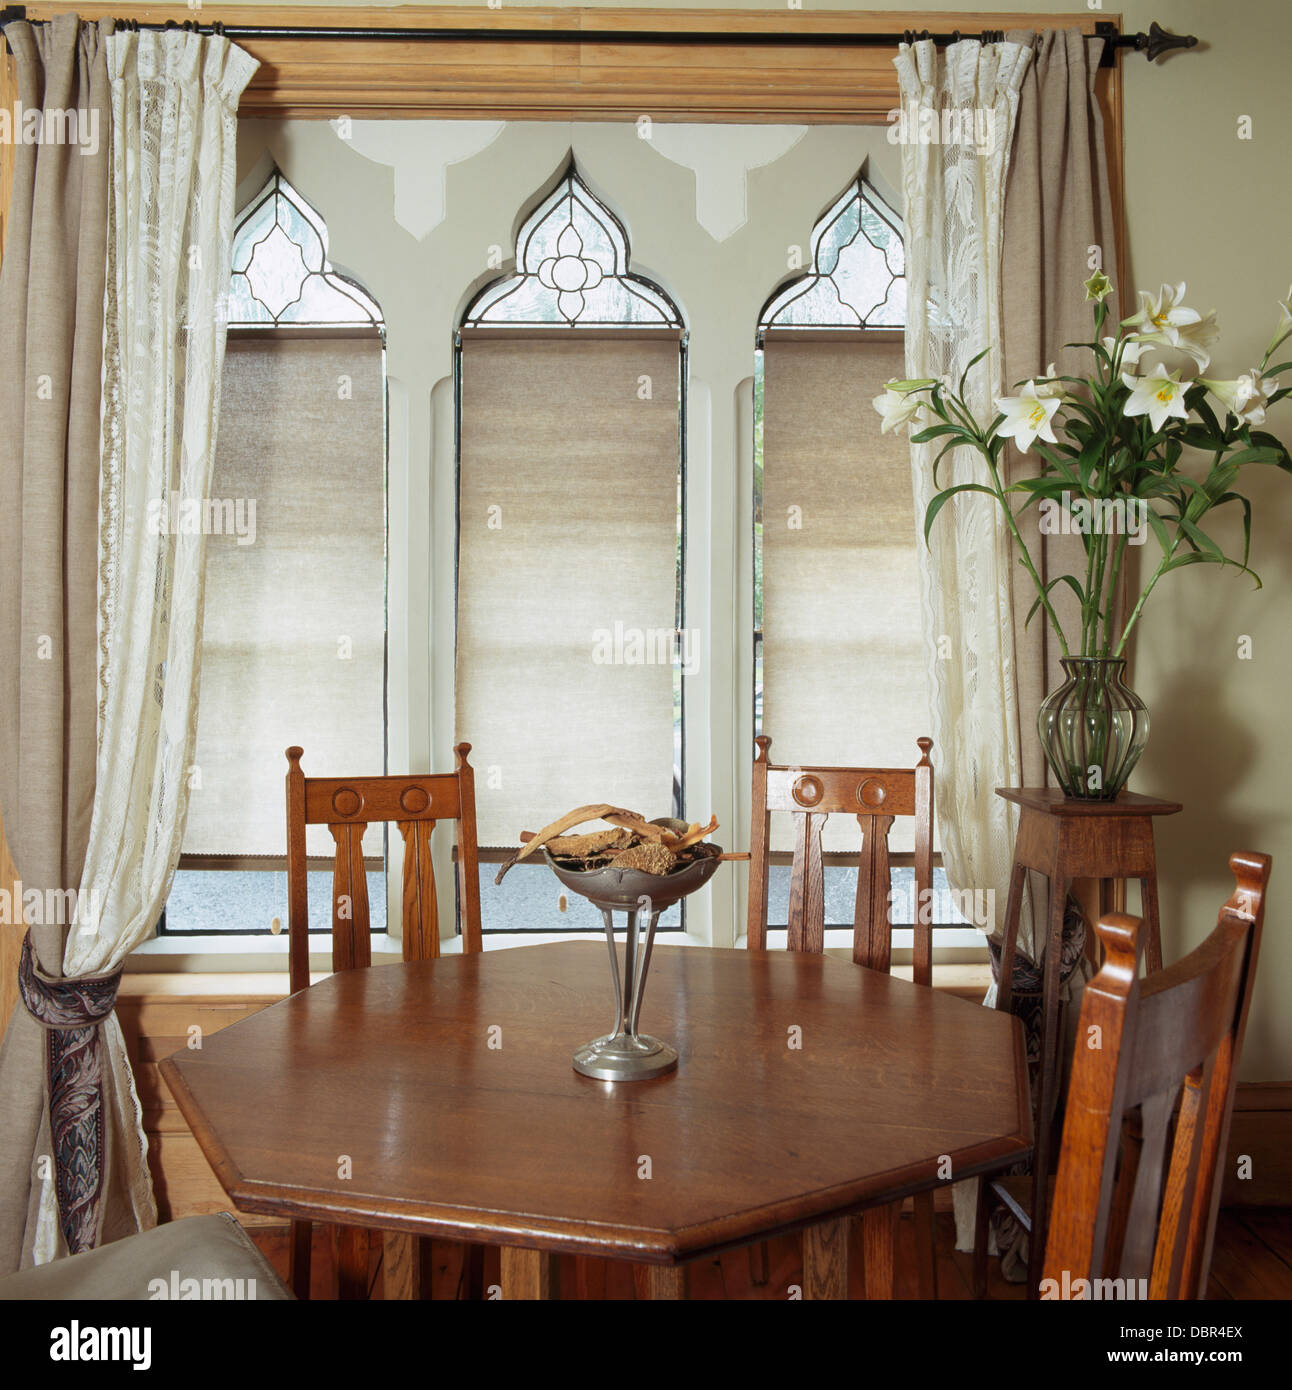 Arts+Crafts Style Chairs And Table In Small Dining Room With Beige And  White Drapes On Gothic Style Window